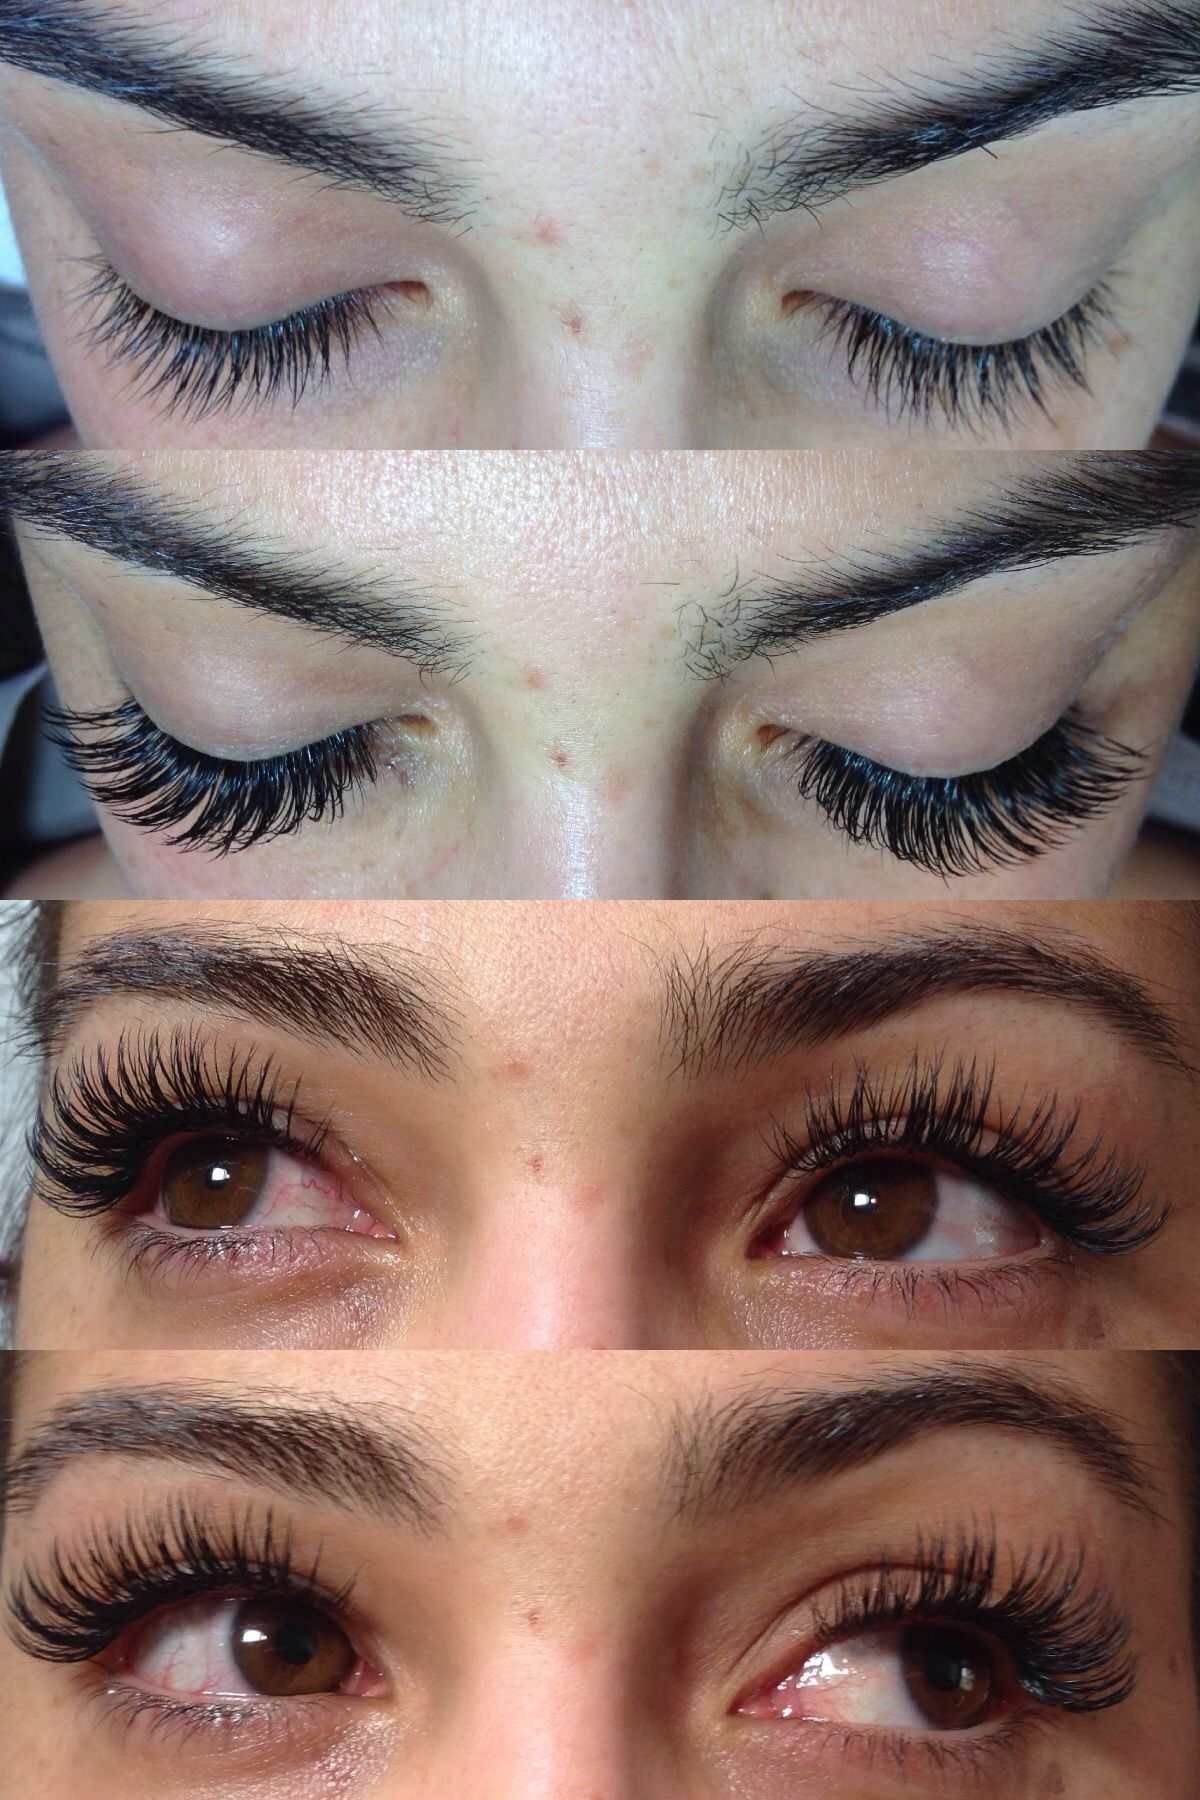 3ad591d544f Before and after photos of lash extensions on my beautiful sister ...